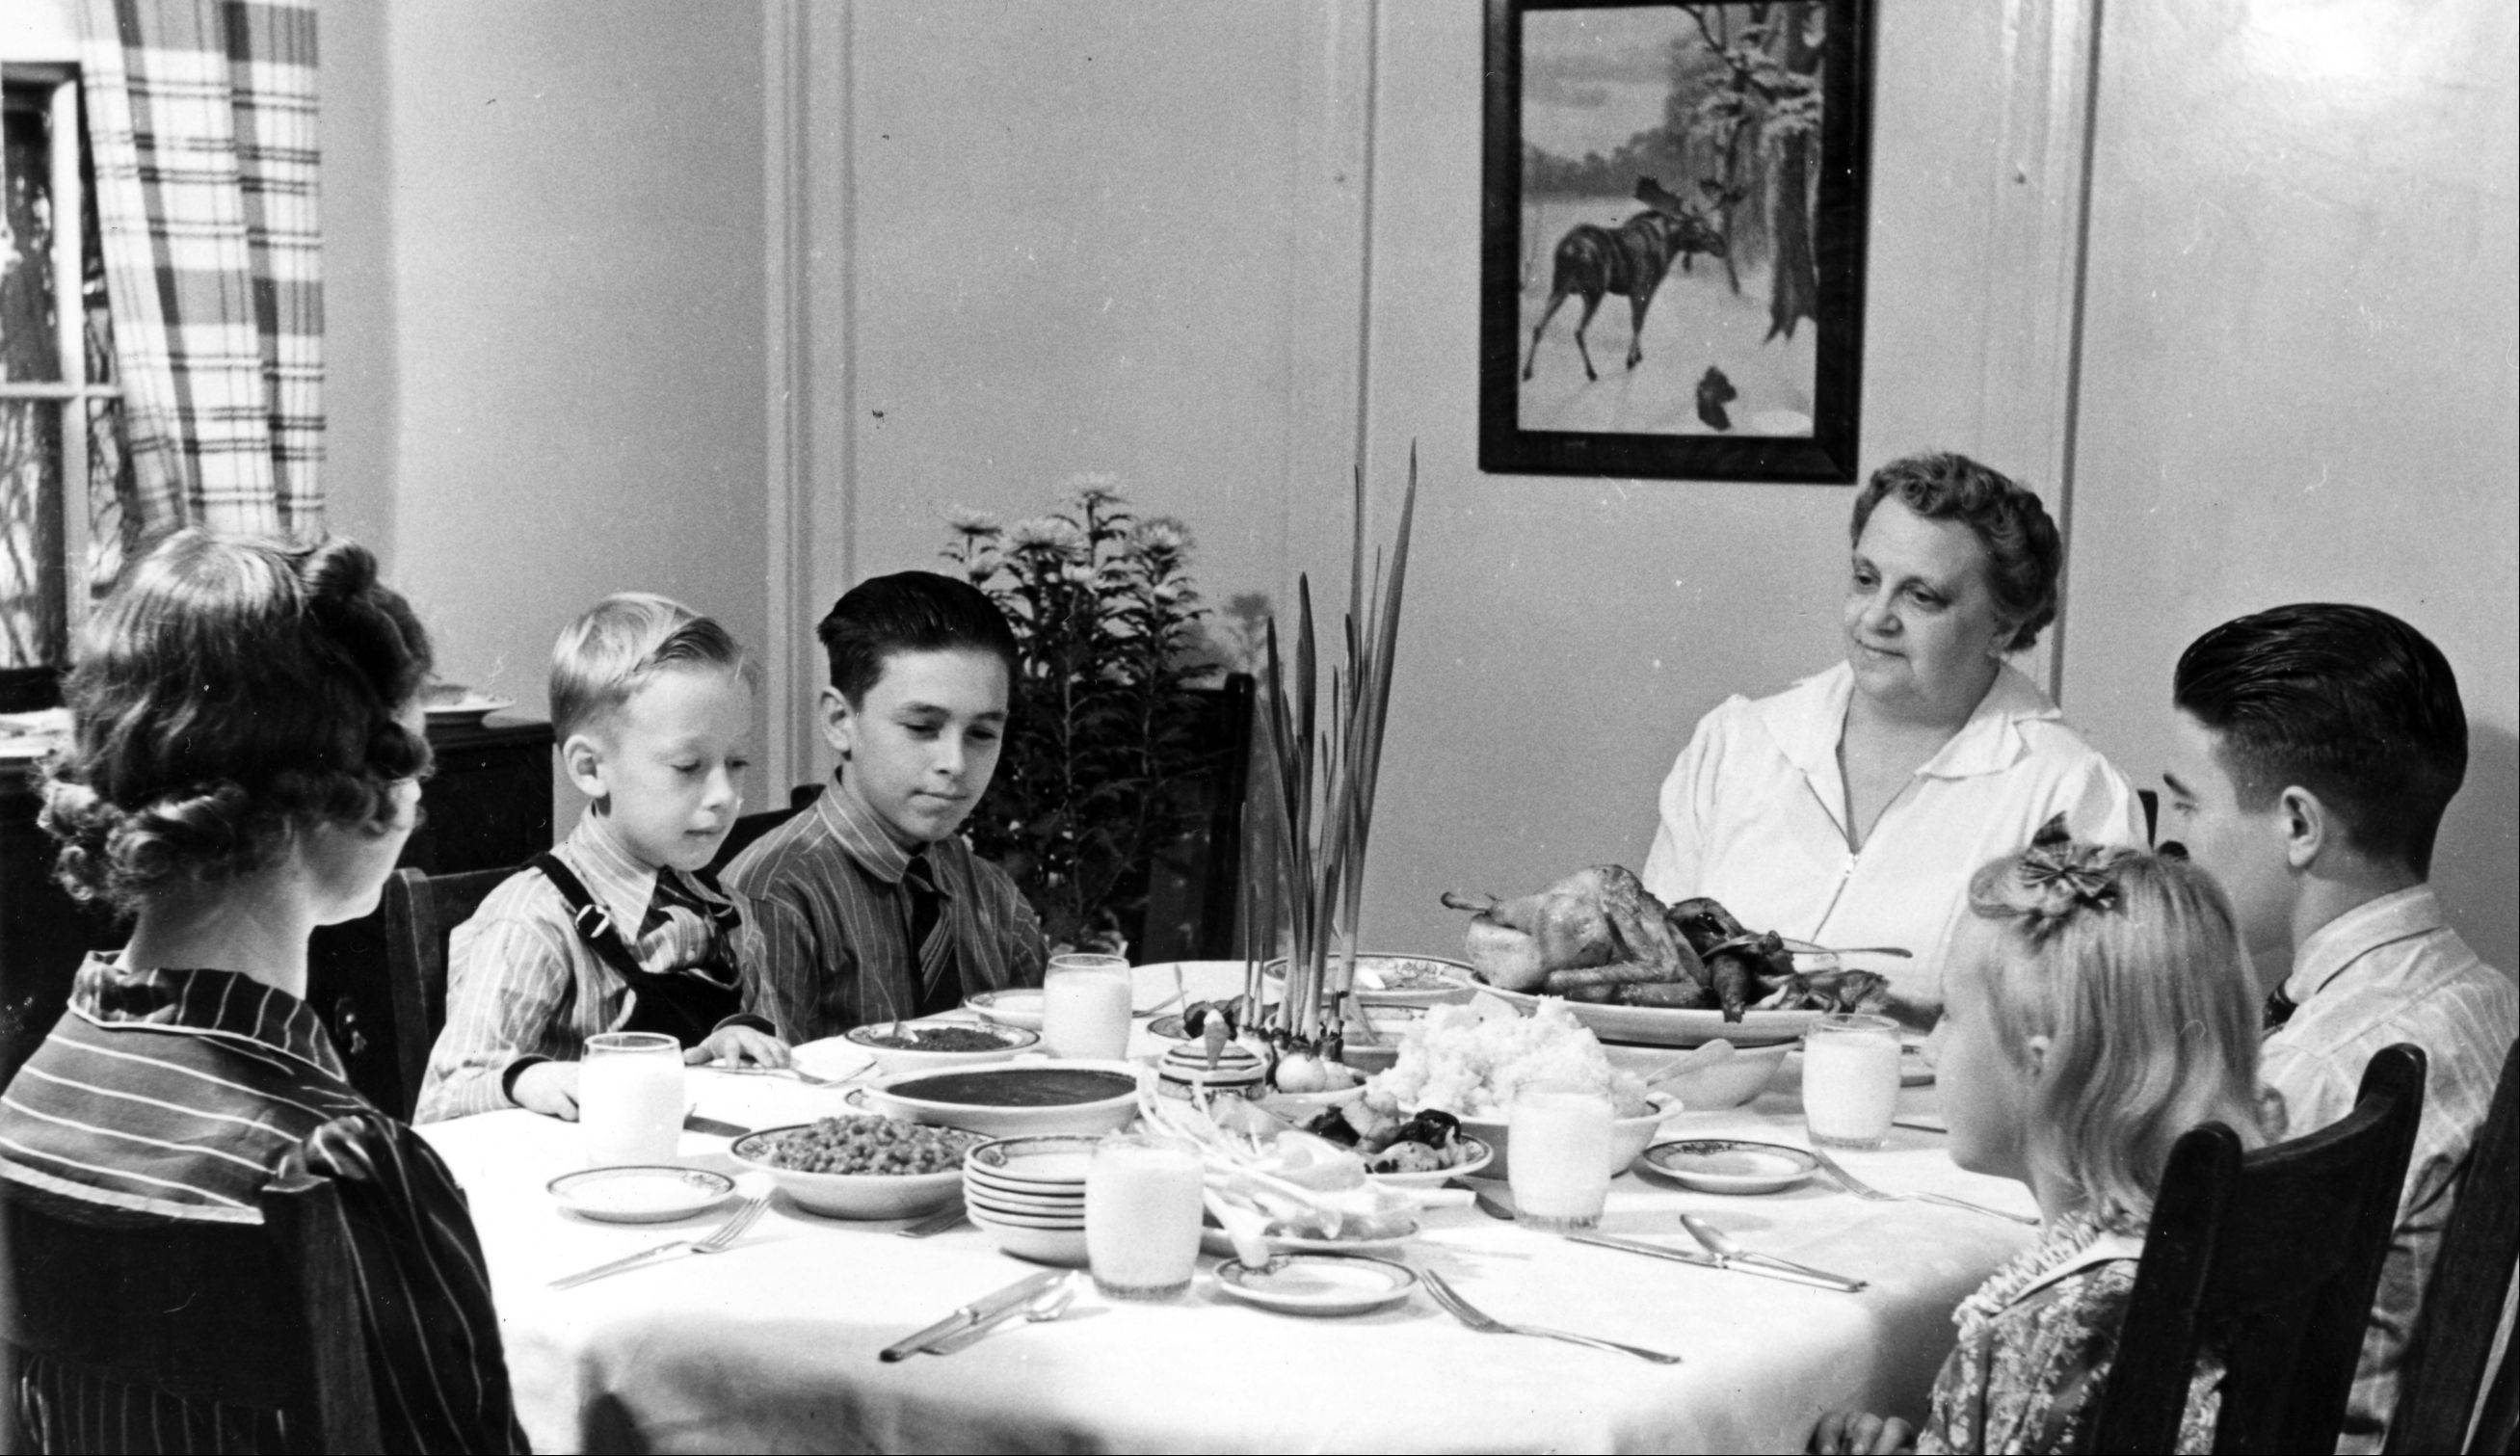 Children enjoy a Thanksgiving Day dinner in a home at Mooseheart in the 1950s. Either the boys or the girls were guests, because the family homes were single-sex.